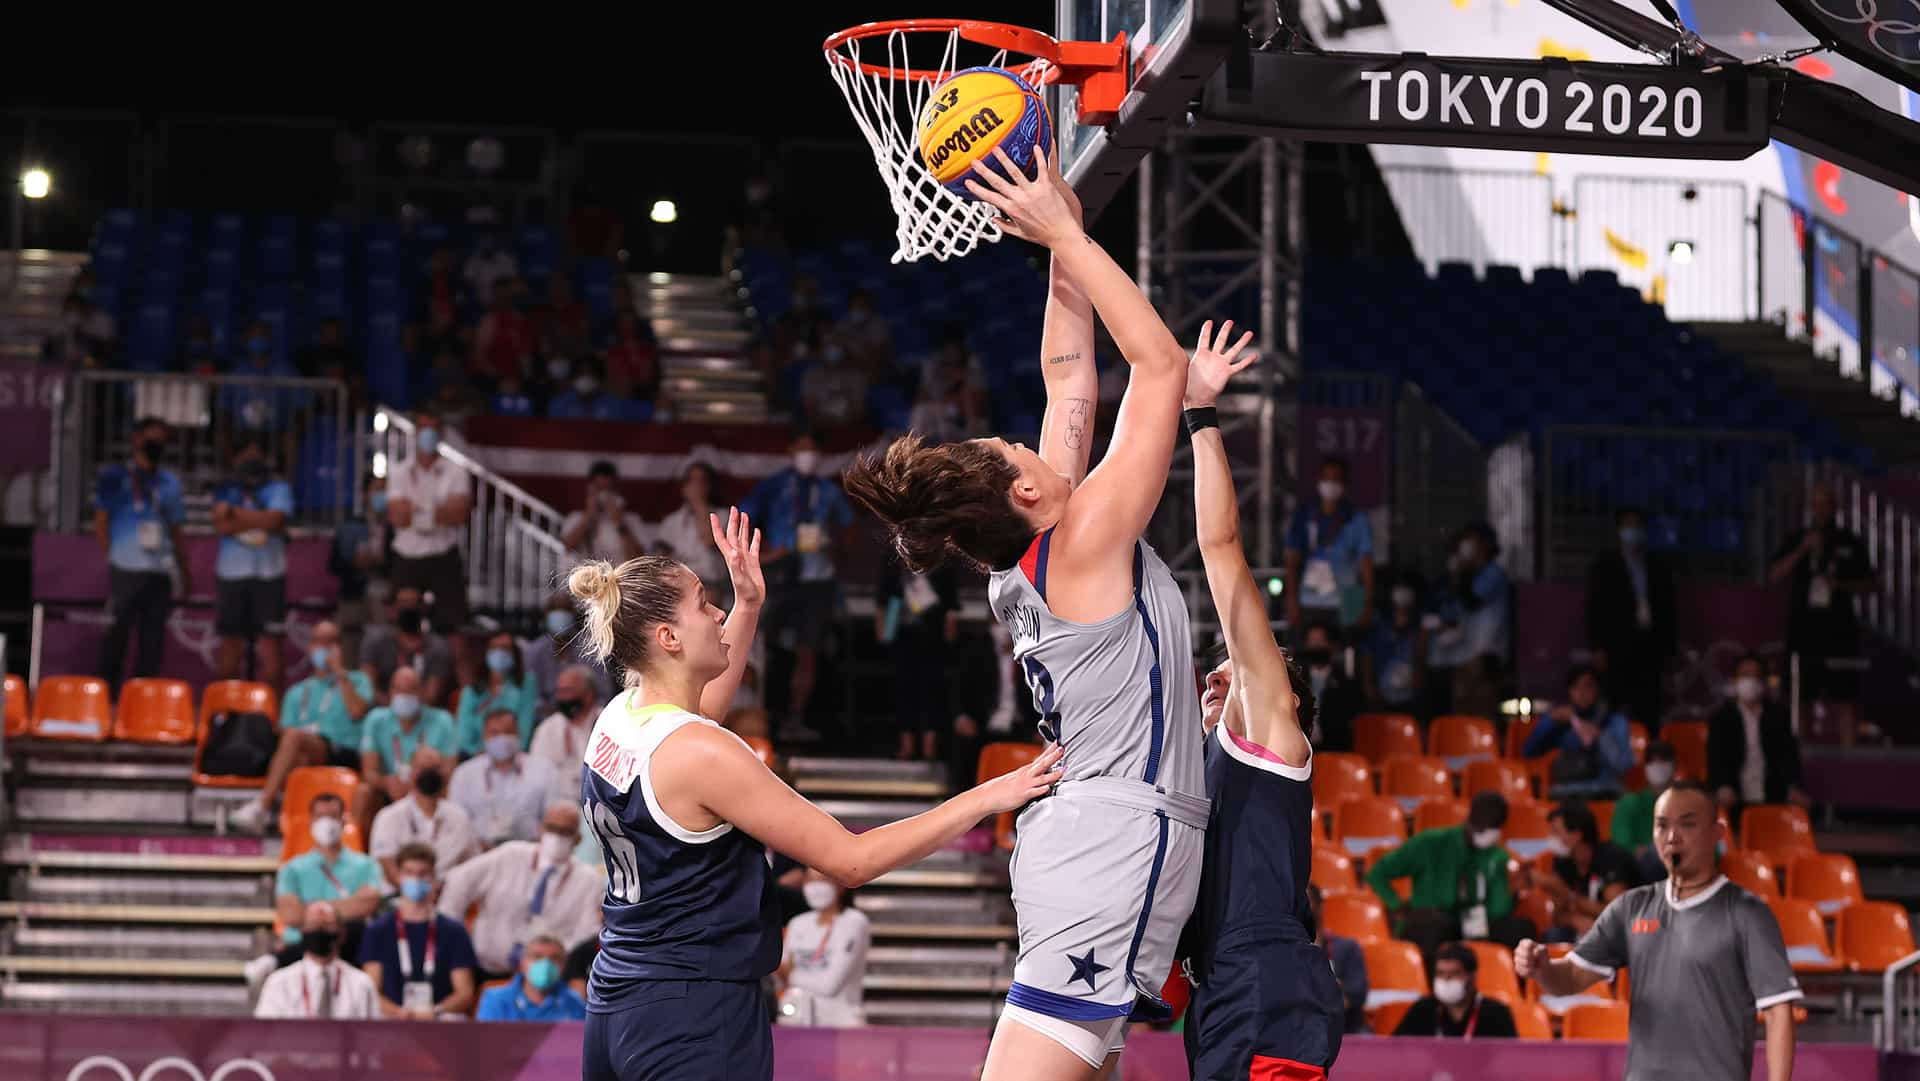 Image for U.S. bests ROC to win inaugural women's 3x3 basketball gold